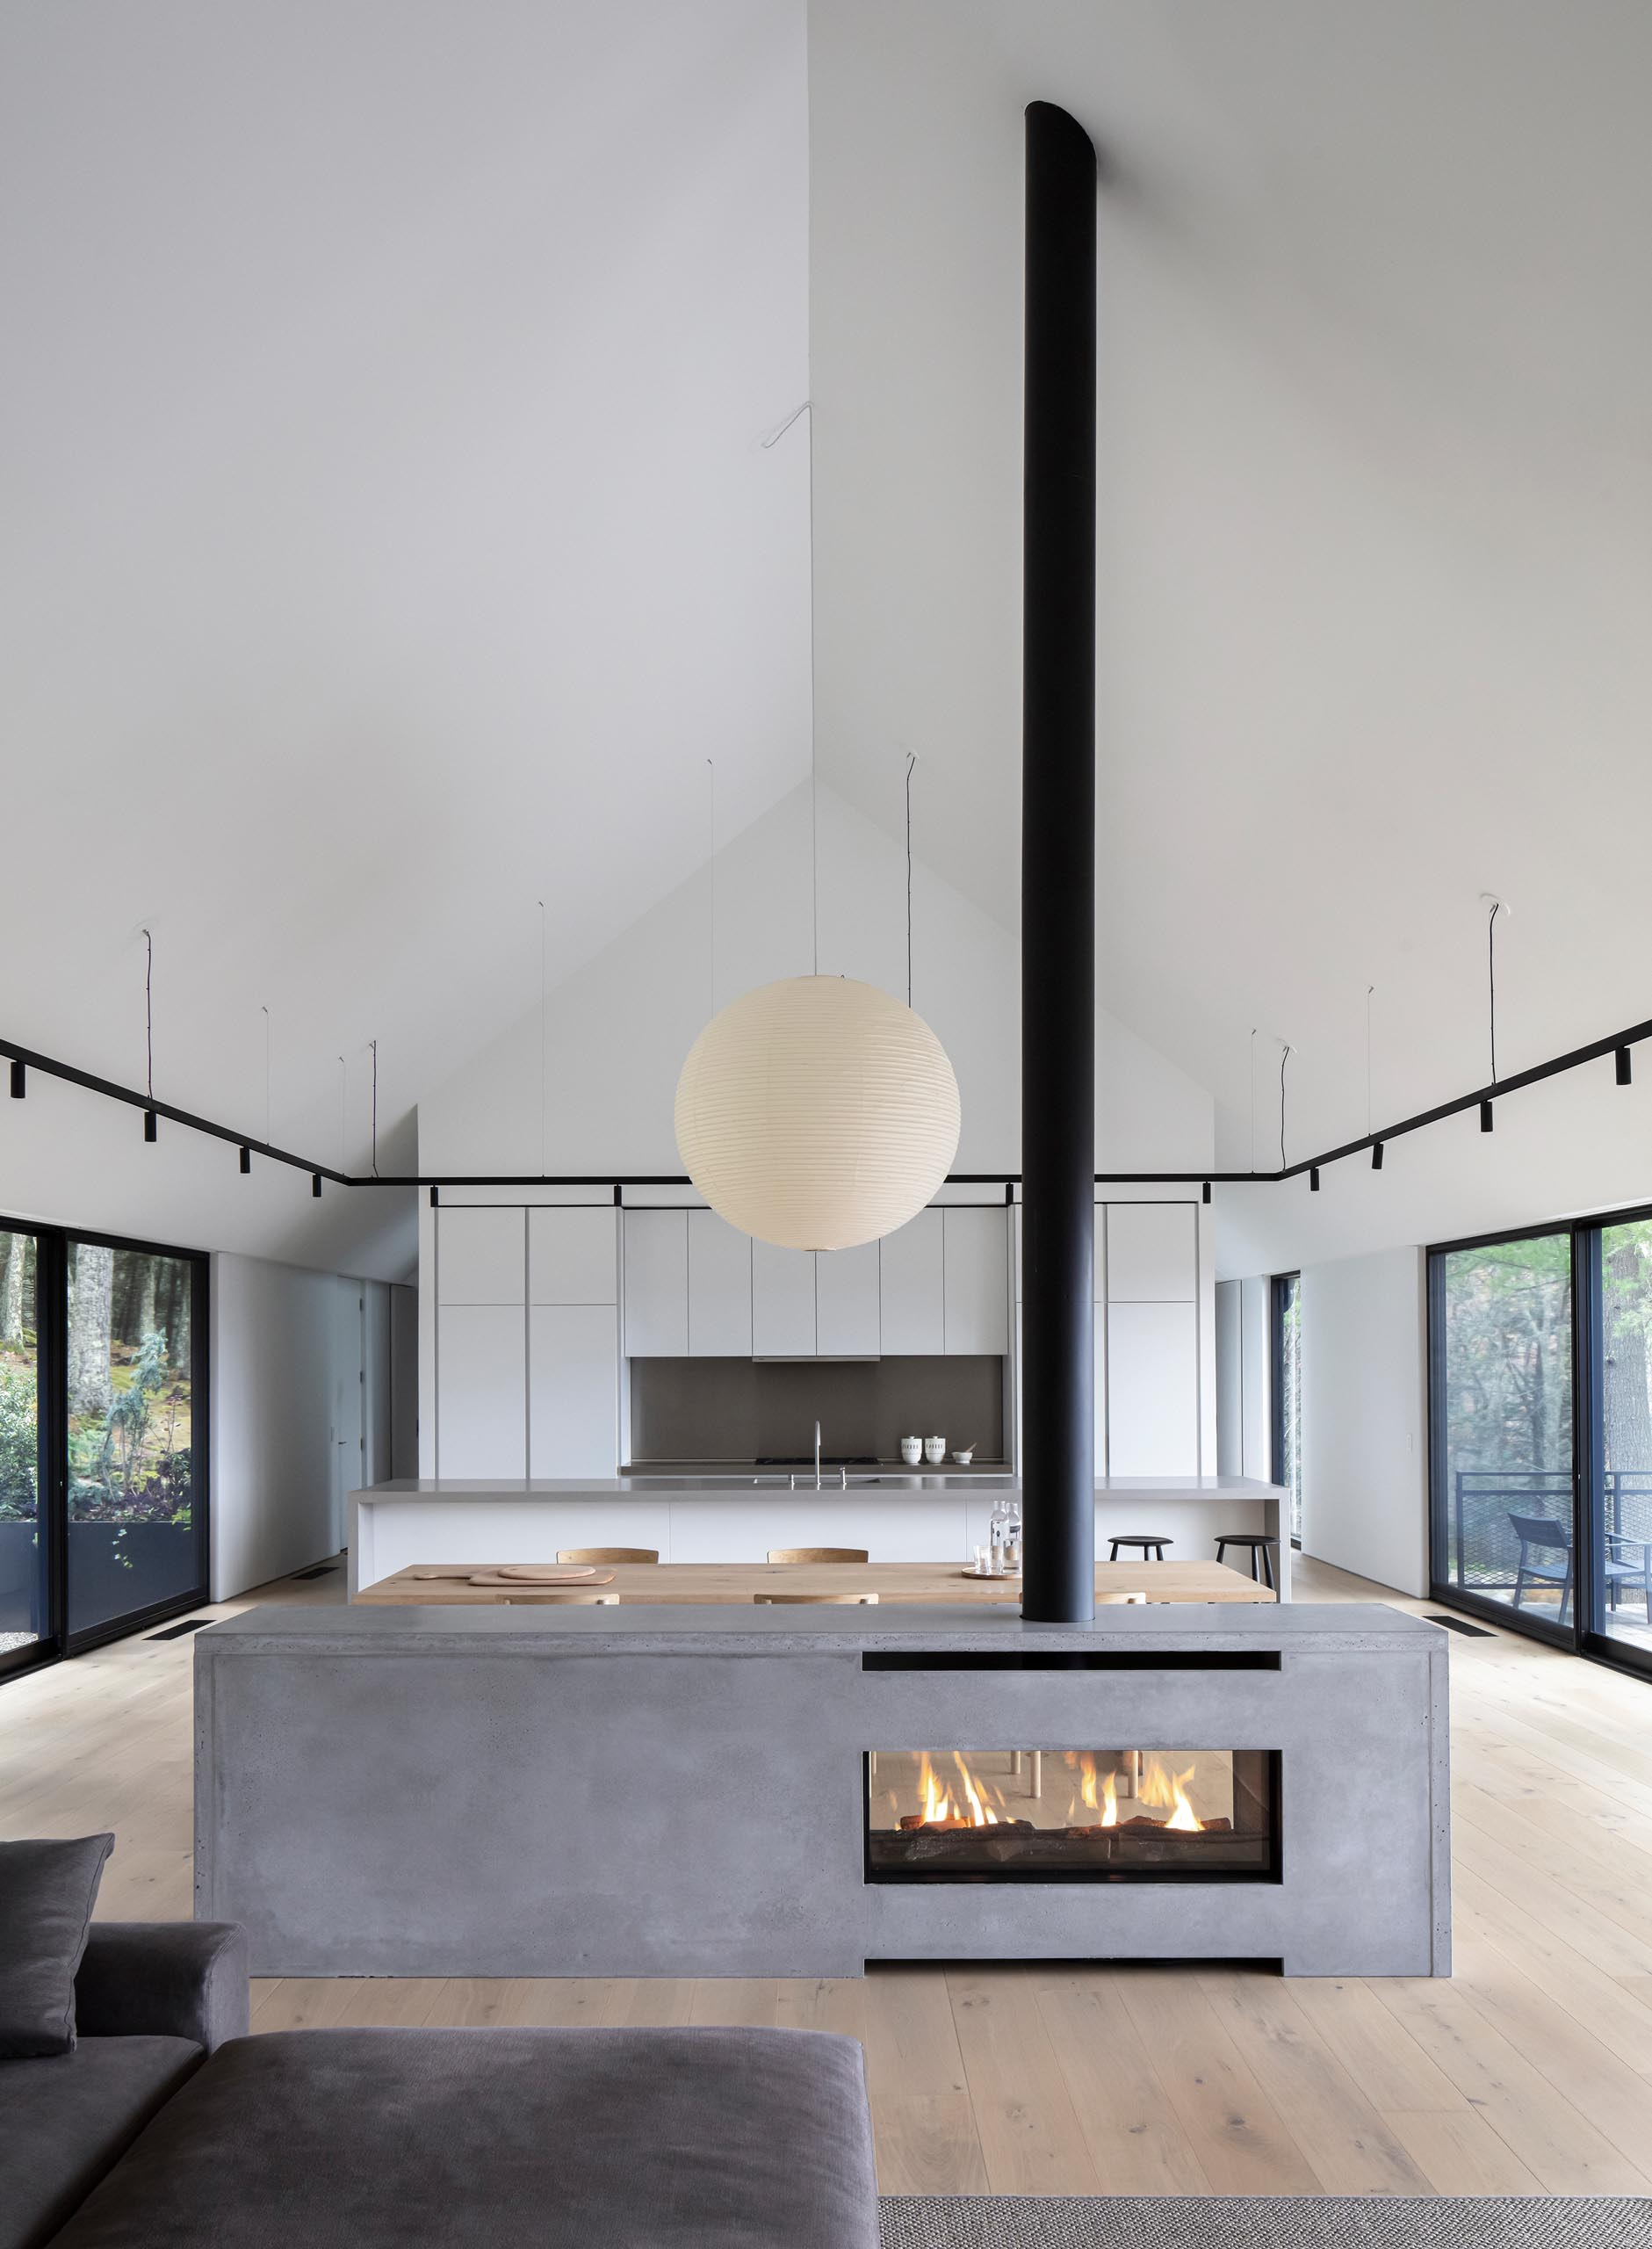 A modern house interior with a see-through fireplace with a concrete surround.